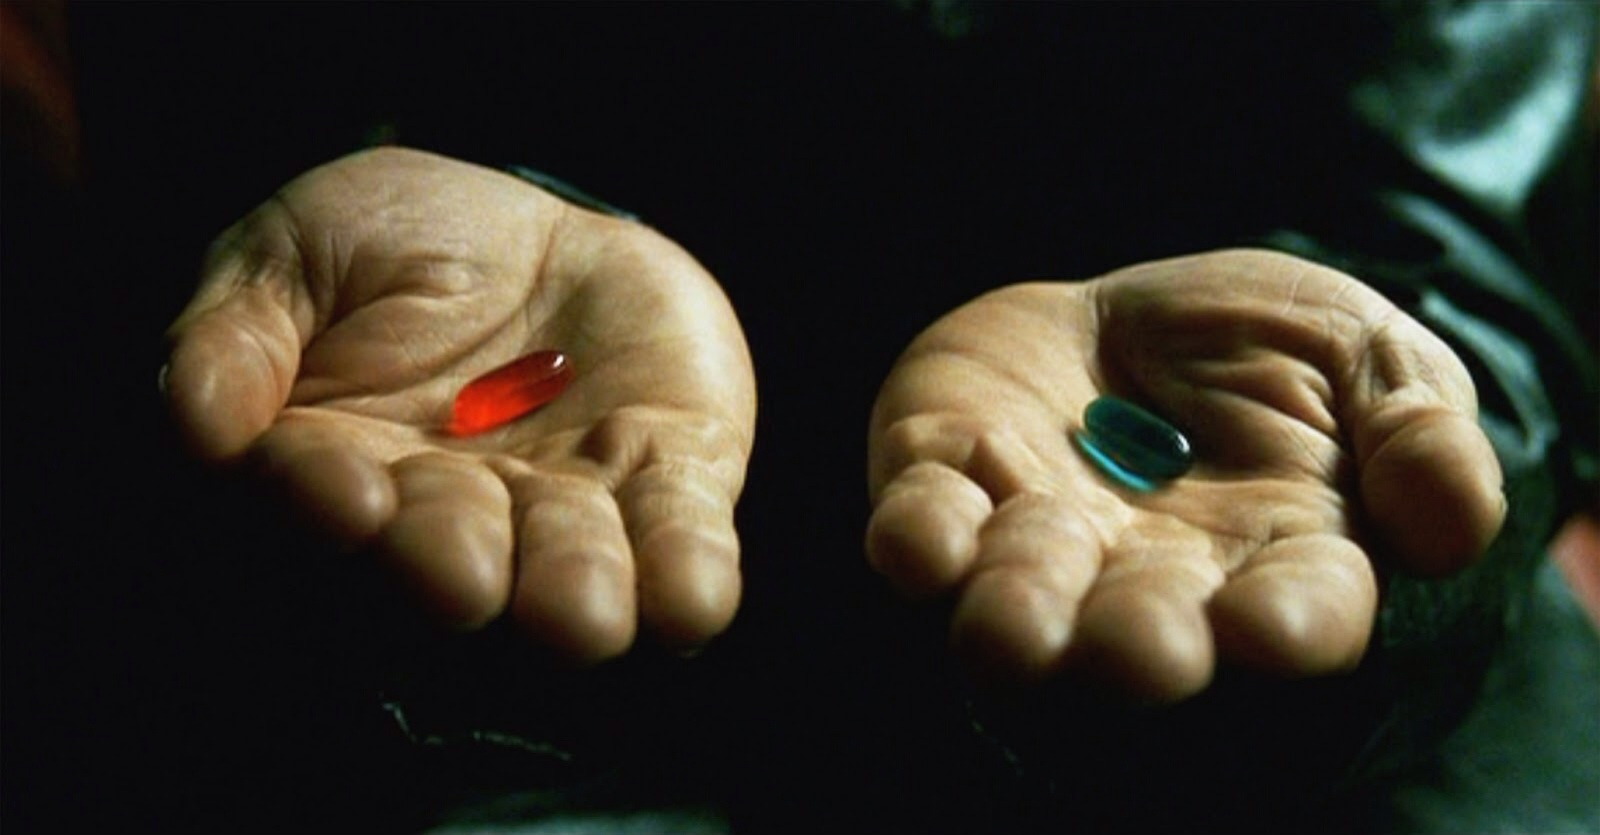 Converted Clicks and Convervsions - The Matrix Red Pill, Blue Pill